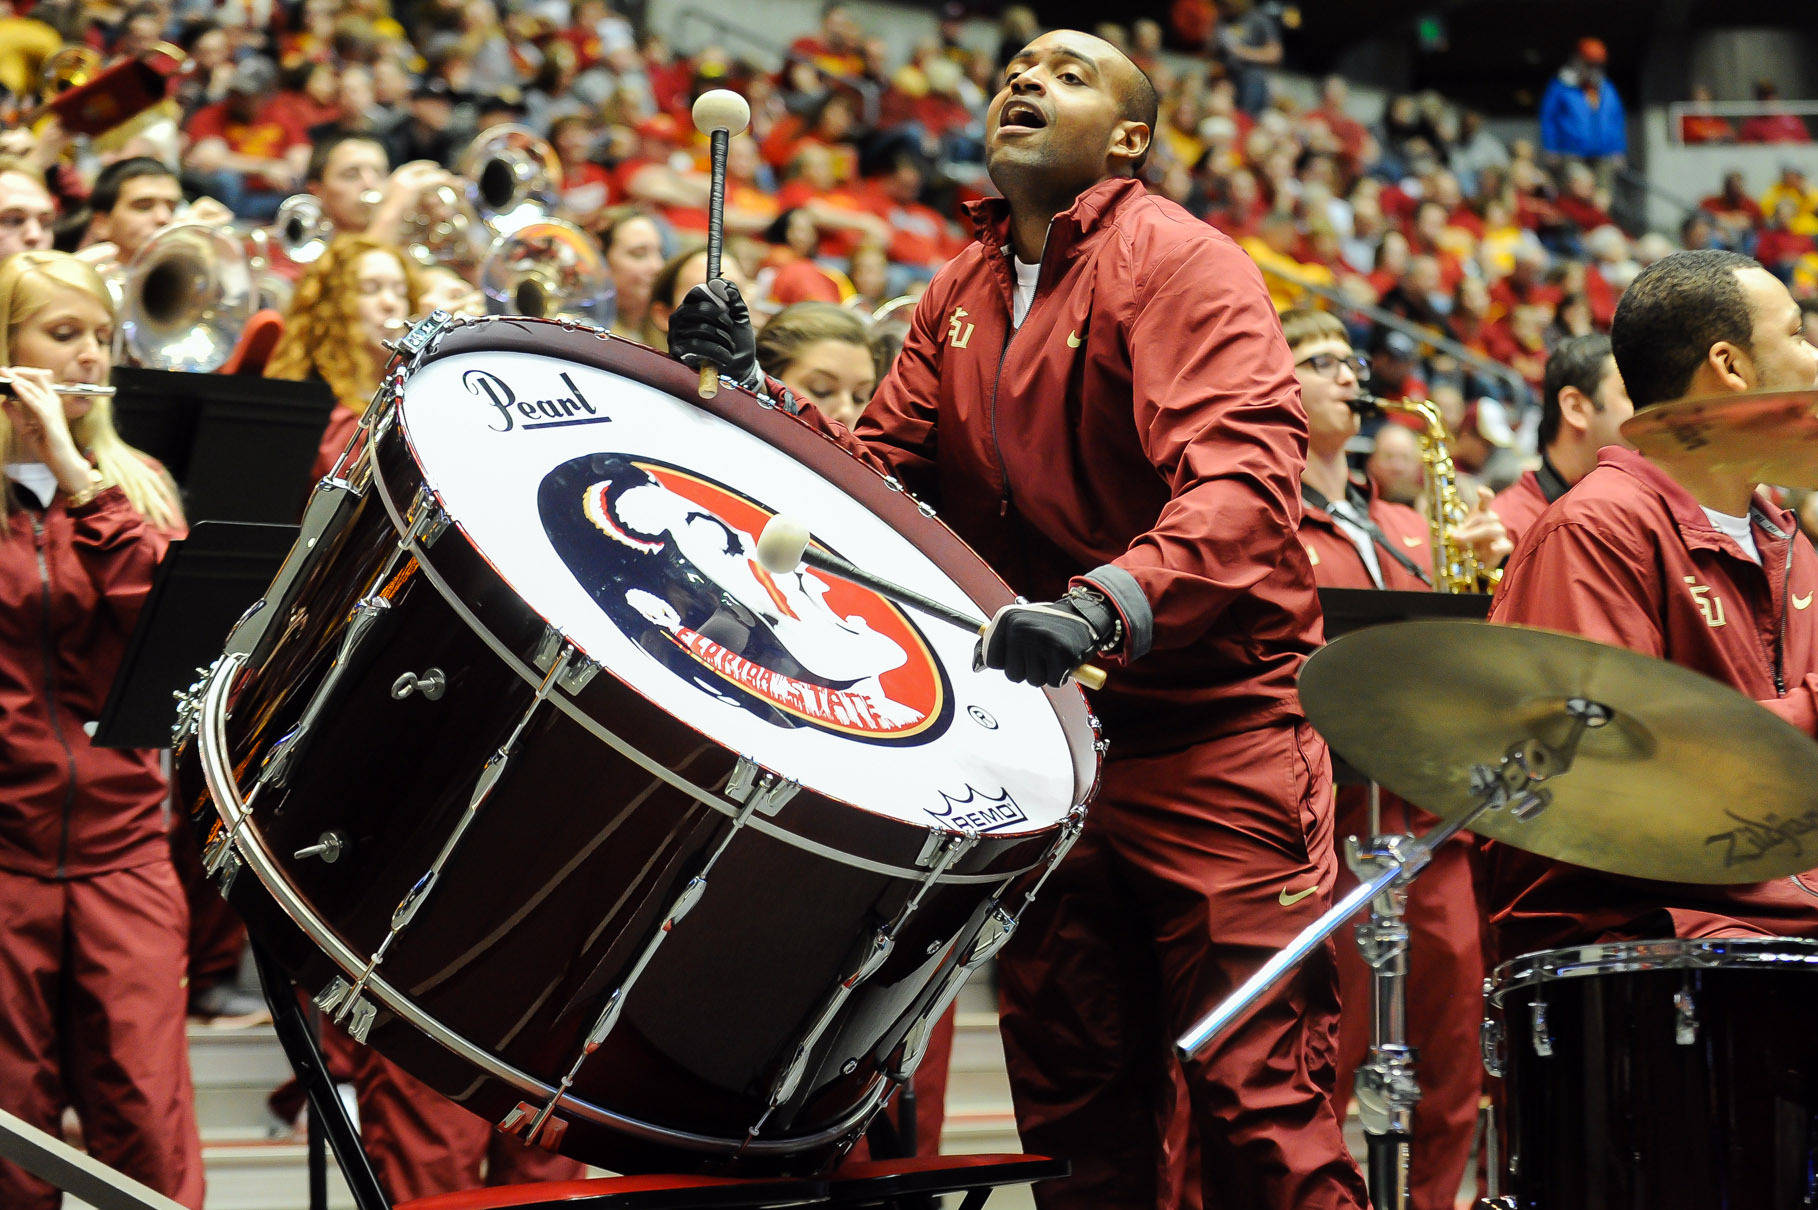 Mar 22, 2014; Ames, IA, USA; A Florida State Seminoles drummer performs in the first half of a women's college basketball game in the first round against the Iowa State Cyclones in the NCAA Tournament at James H. Hilton Coliseum. Mandatory Credit: Steven Branscombe-USA TODAY Sports